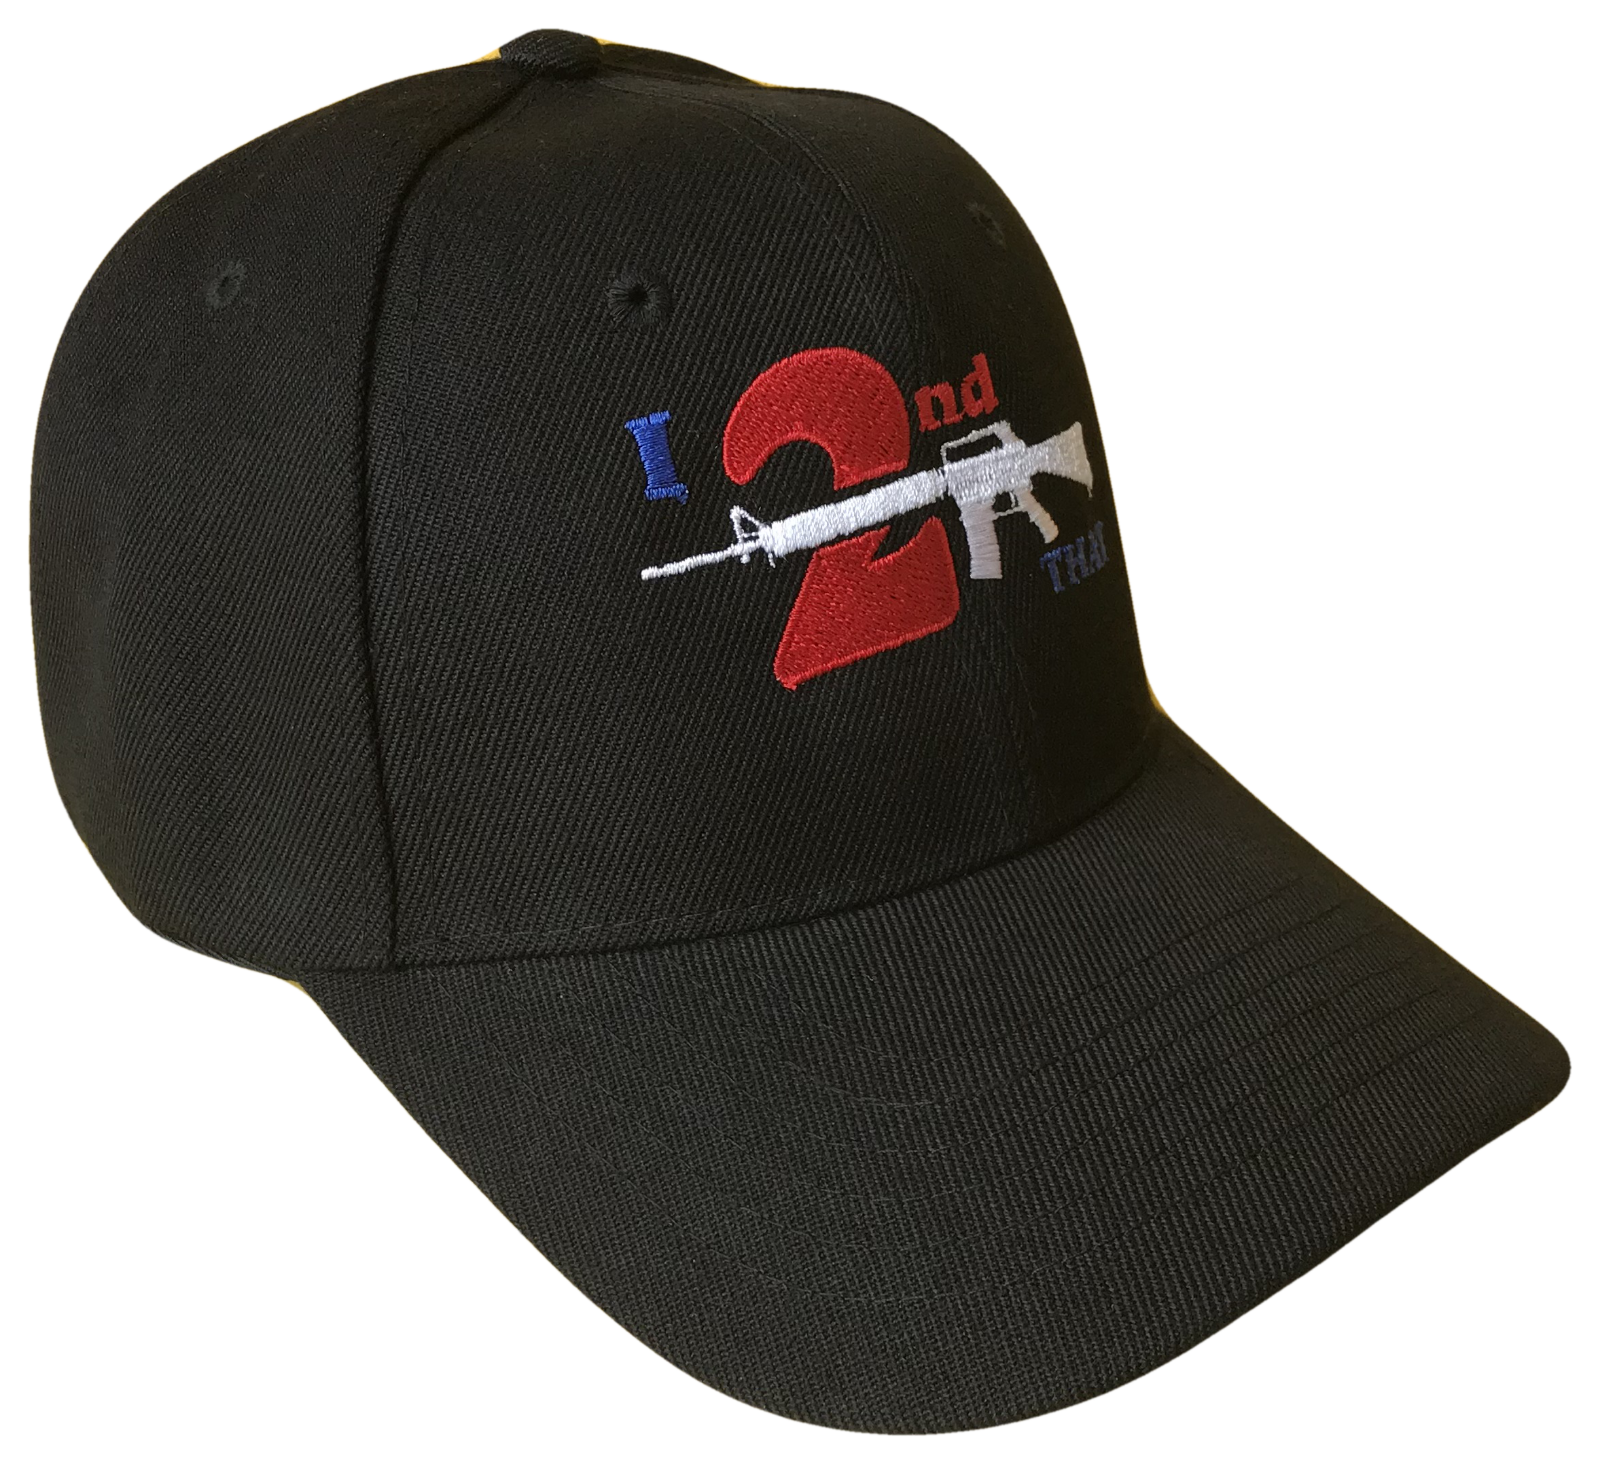 I 2nd That Second Amendment Adjustable Baseball Cap Caps Hat Hats Gun Black